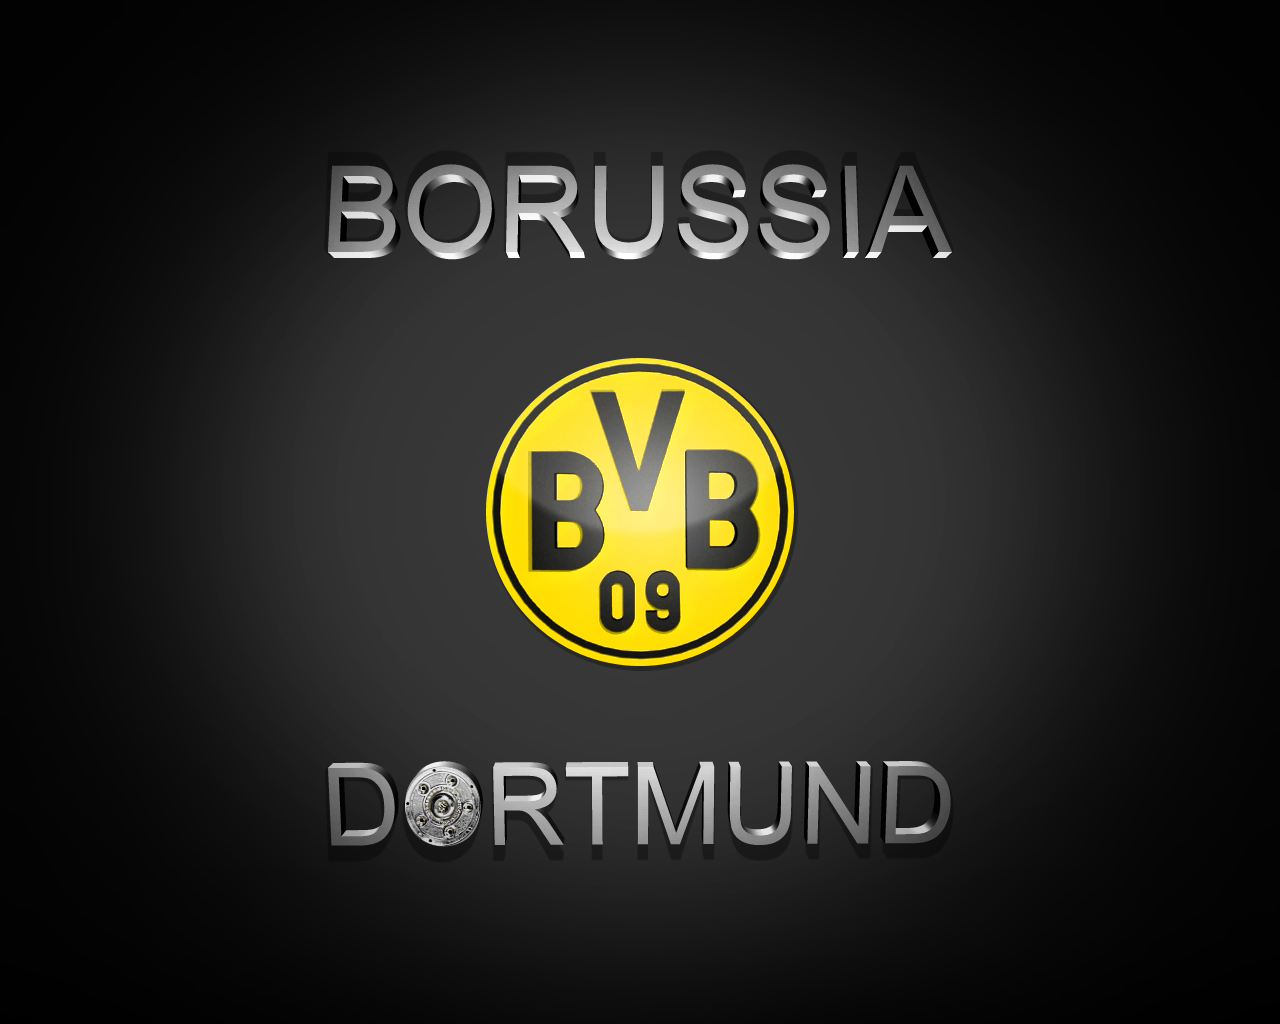 Borussia Dortmund wallpapers | Freshwallpapers